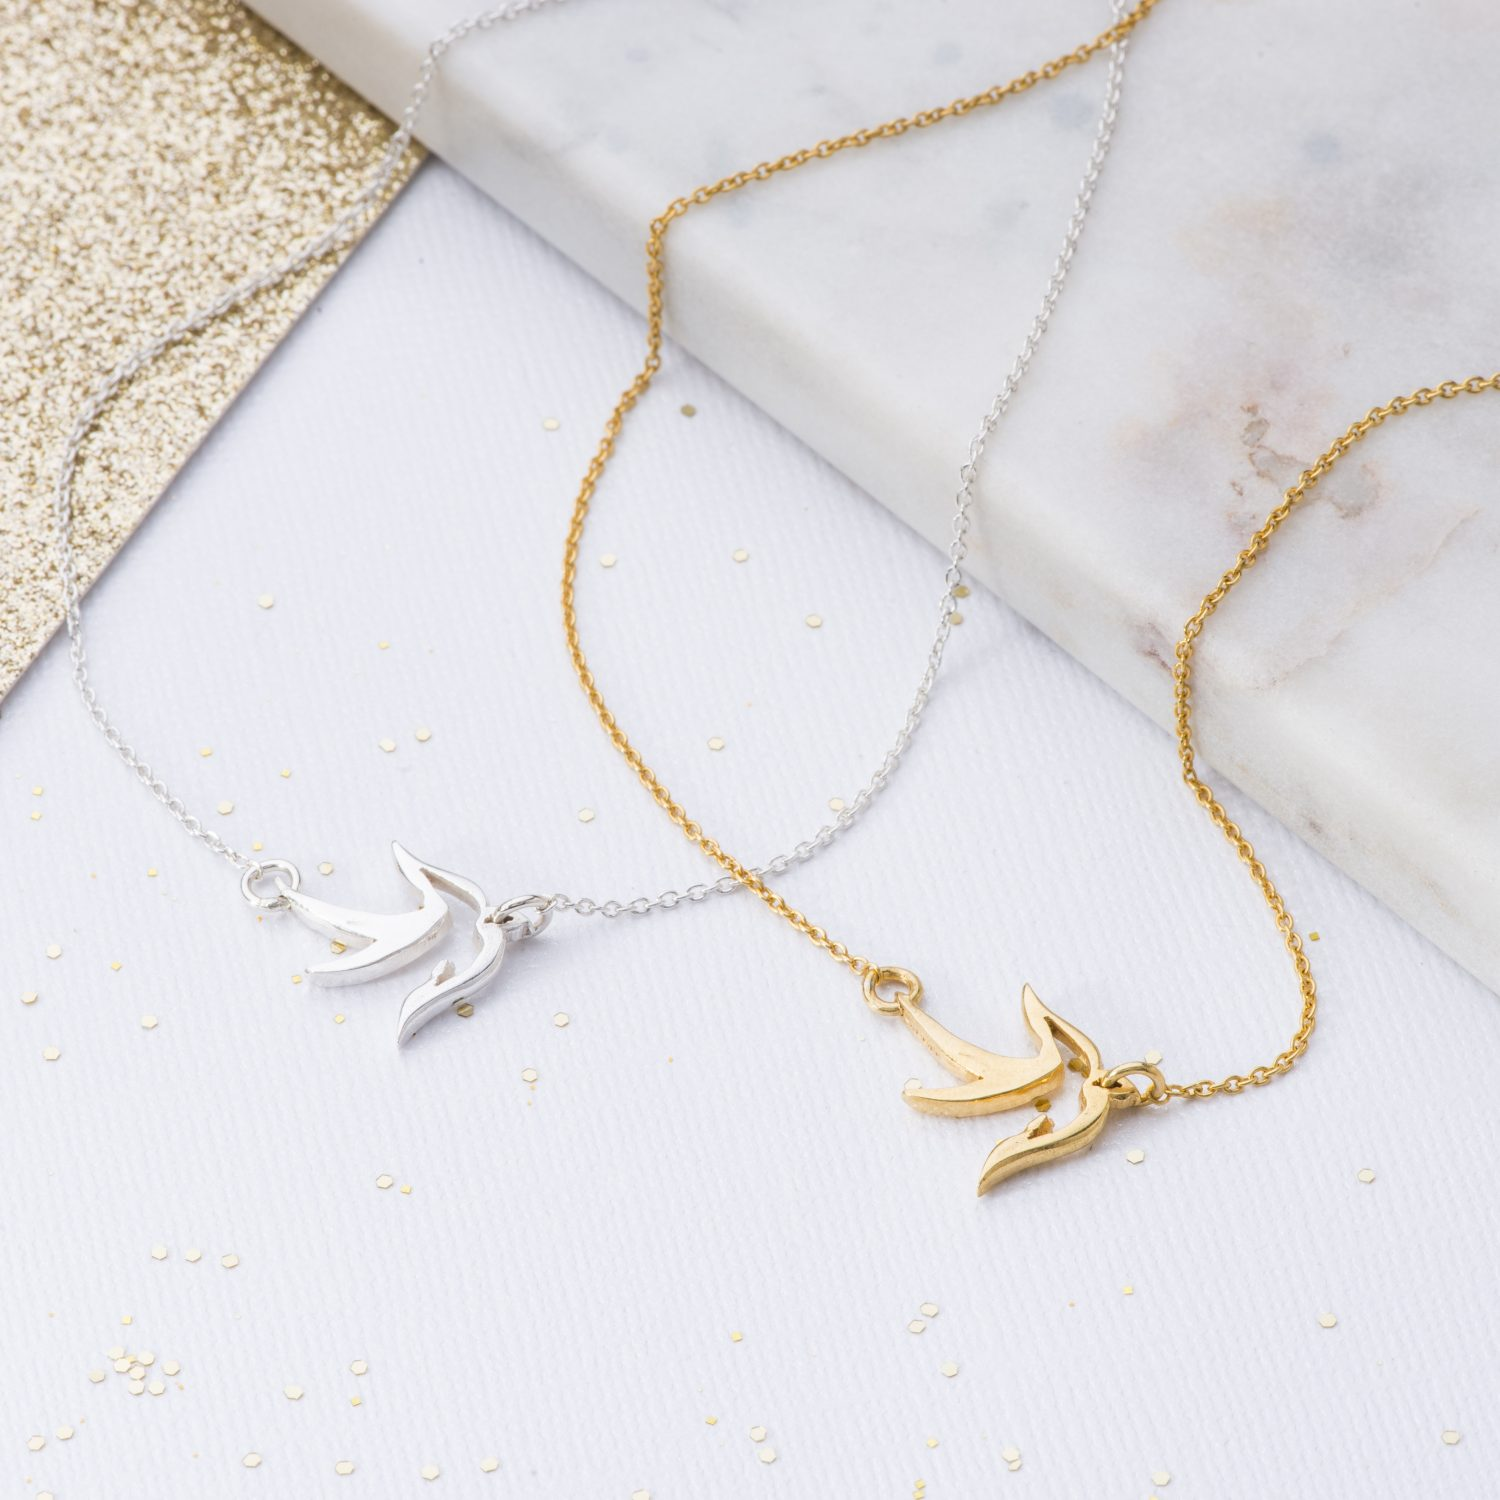 necklaces kimberley gold little product necklace silver pendant and selwood bird